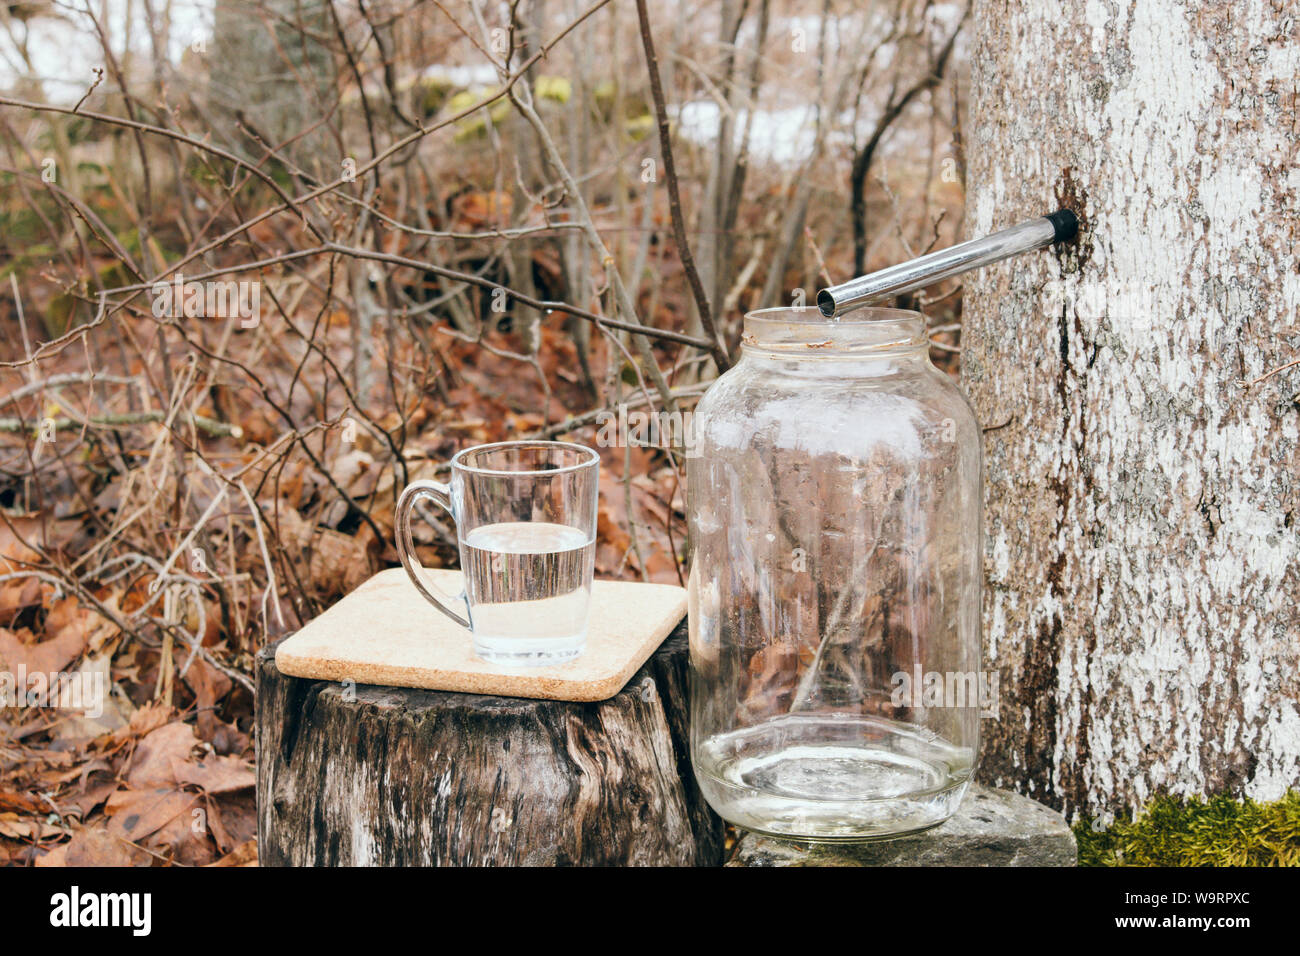 Gathering maple tree juice sap in spring outdoors. Maple trees are tapped by drilling holes into their trunks and collecting the exuded sap. Stock Photo